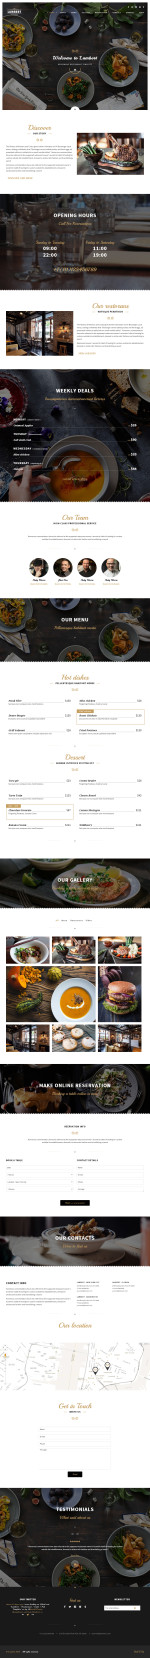 5+ Best Responsive Cafe and Bar HTML5 Templates in 2015